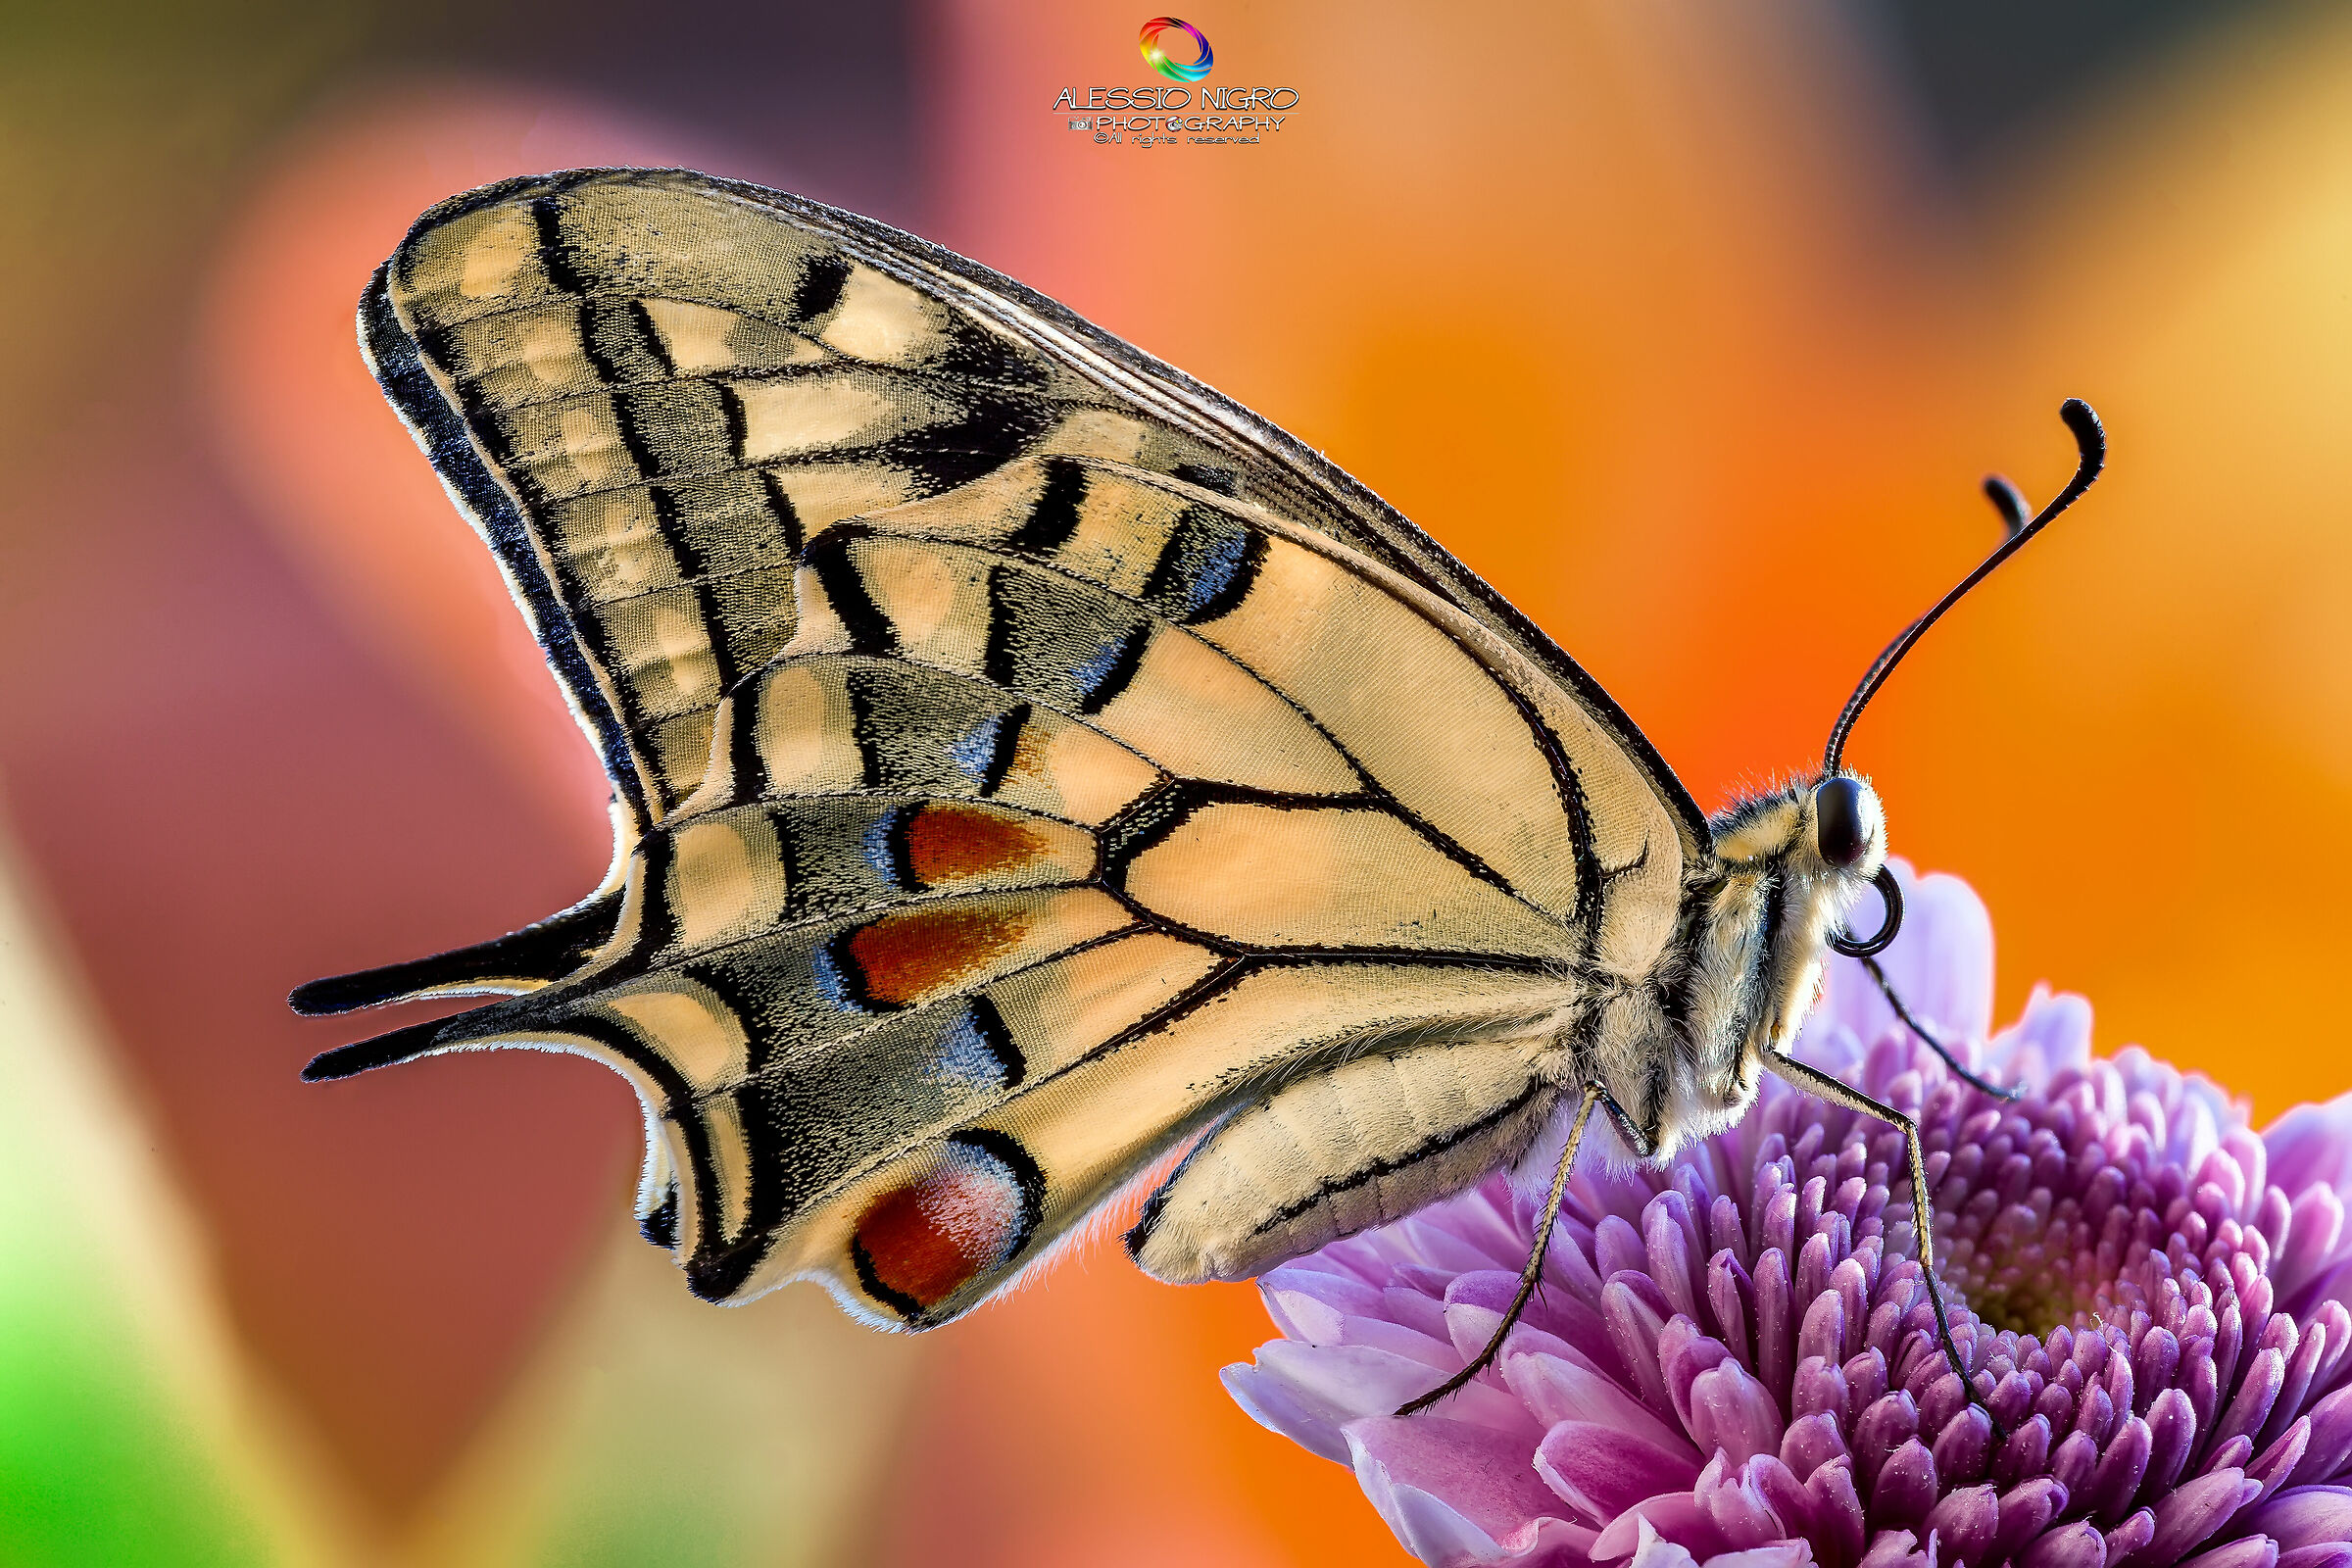 The Machaon and his Flower...